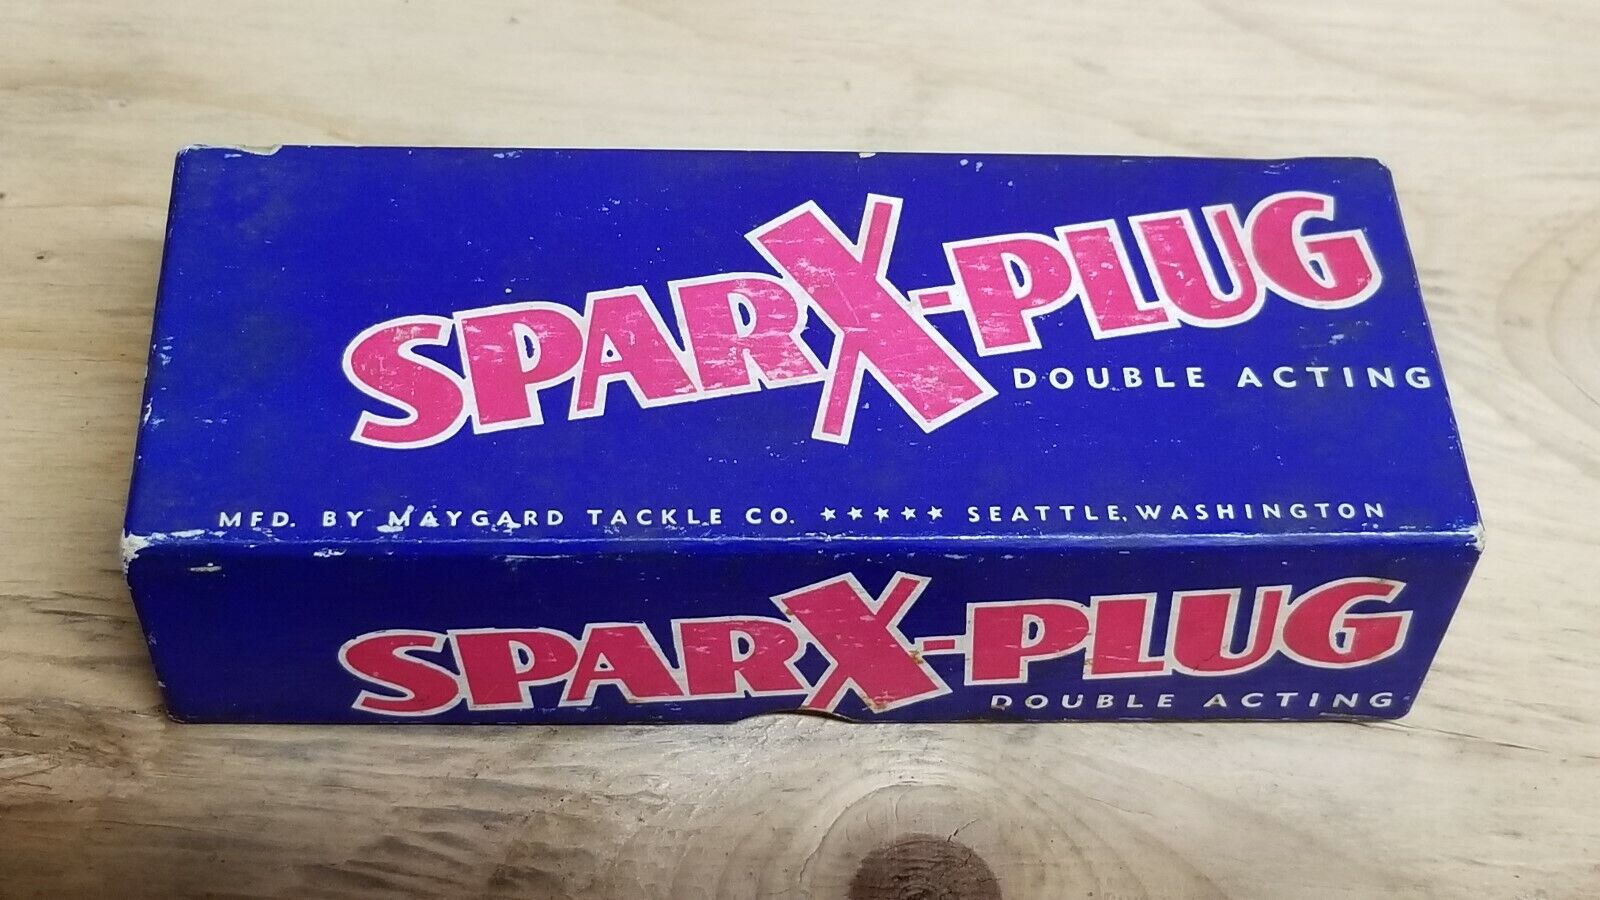 VTG (circa 40's-50's) SPARX-PLUG Fishing Lure With Original Box And  Paperwork  cost-effective